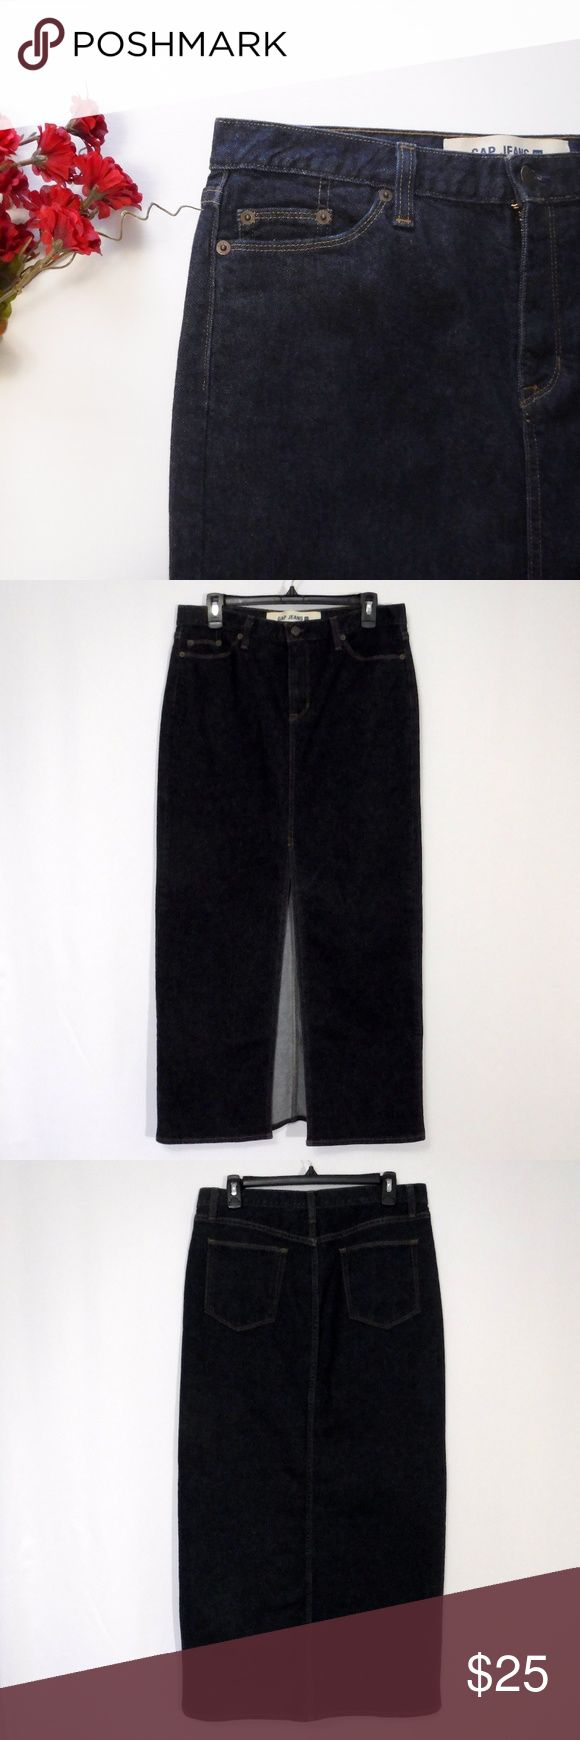 """Gap Jeans Denim Maxi Long Skirt Size 10 Reg Gap Jeans Dark Blue Denim Maxi Skirt Size 10 Reg   5 Pockets Button with Zipper Closure 23"""" Factory Split Vent in Front  99% Cotton 1% Lycra Spandex  Appears Hardly Worn In Excellent Pre-Owned Condition and Shows Normal Signs Of Wear With No Stains.   All Measurements Posted Below are Aprox. & Taken While Laying Flat  Waist: 16.5""""(33) Length: 39.5""""  Please Ask Any Questions You may Have Before Purchasing.  Smoke & Pet Free Home  Please Check Out My…"""